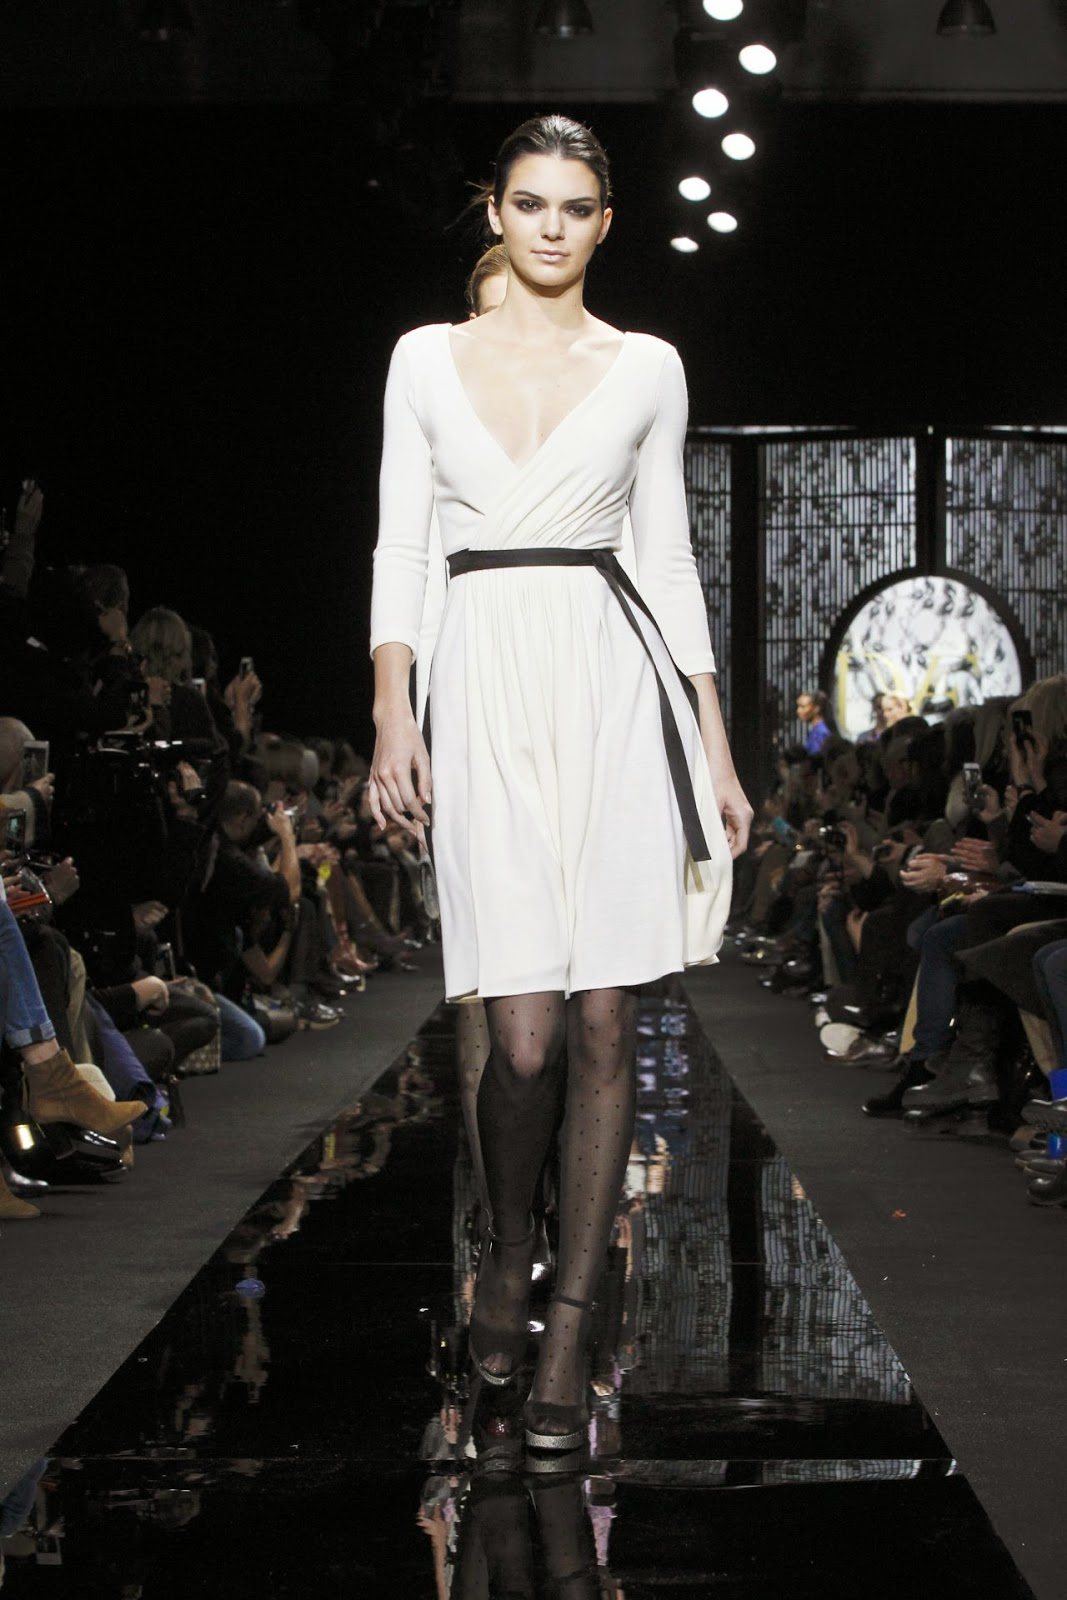 Kendall Jenner is classy in white at the Diane Von Furstenberg Fall/Winter 2015 New York Fashion Week Show